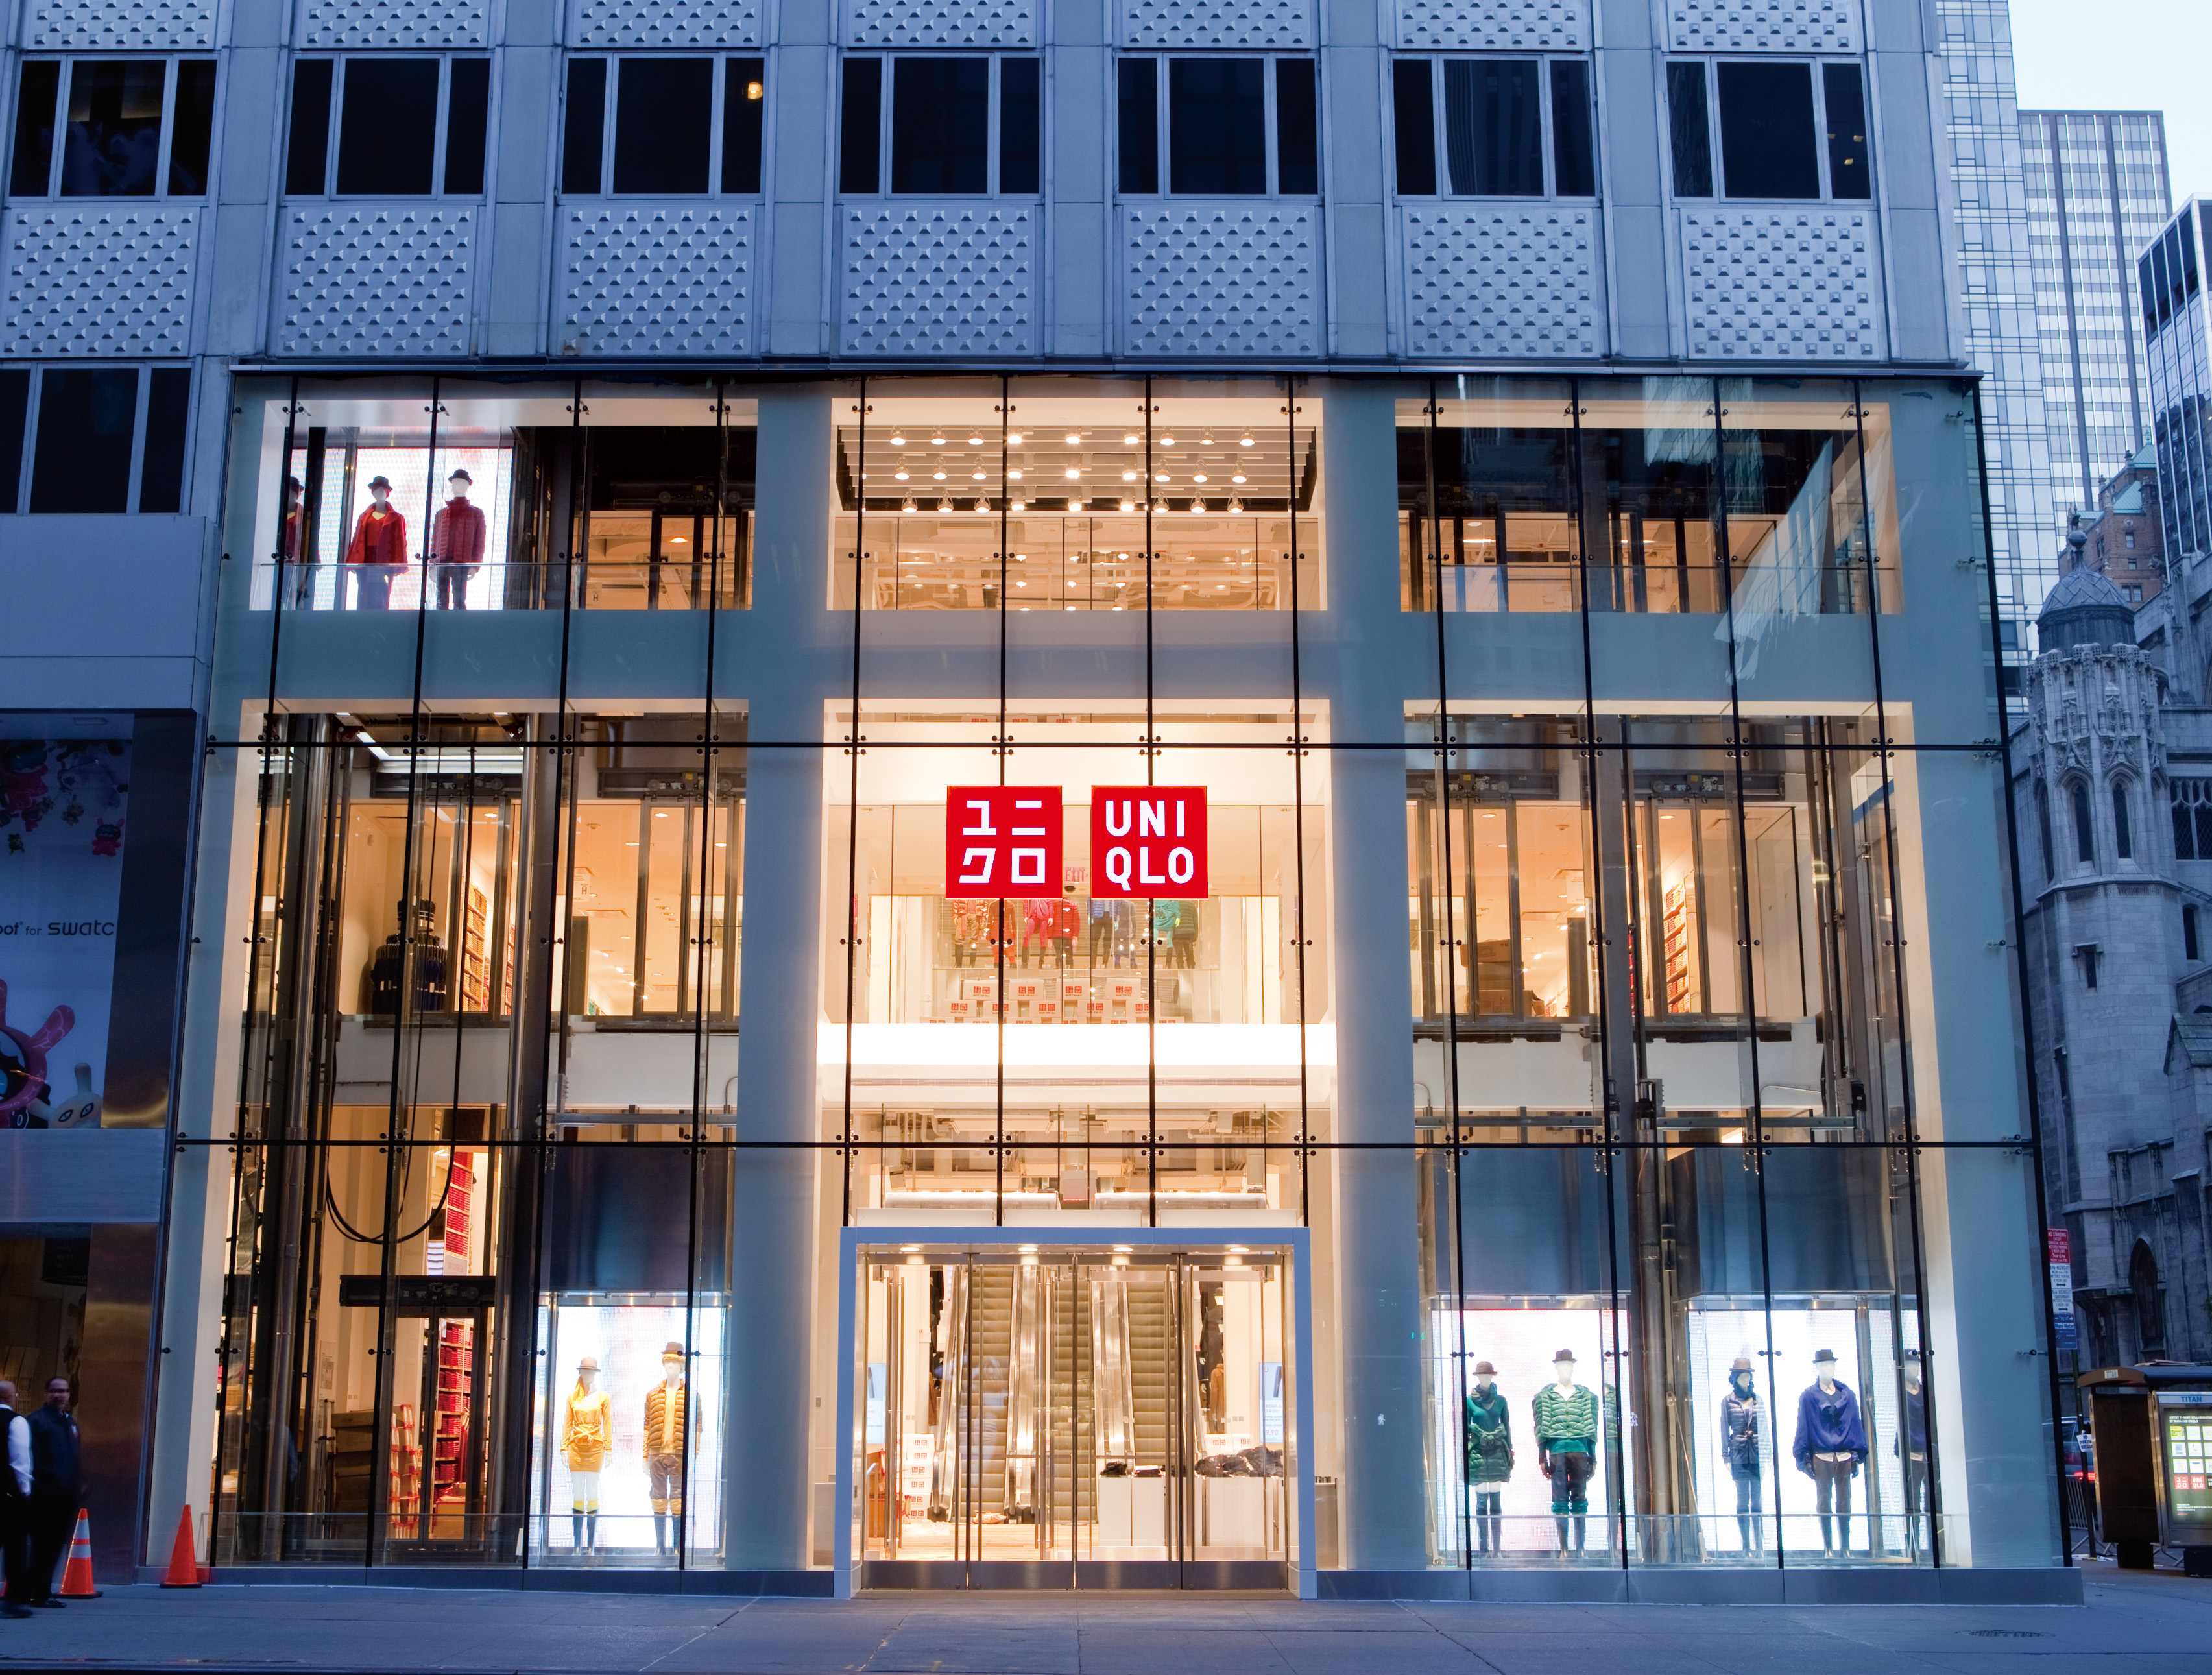 Grab a UNIQLO coupon or promo code from Groupon Coupons and shop the latest clothing sales, exclusive collection discounts, and free shipping offers!